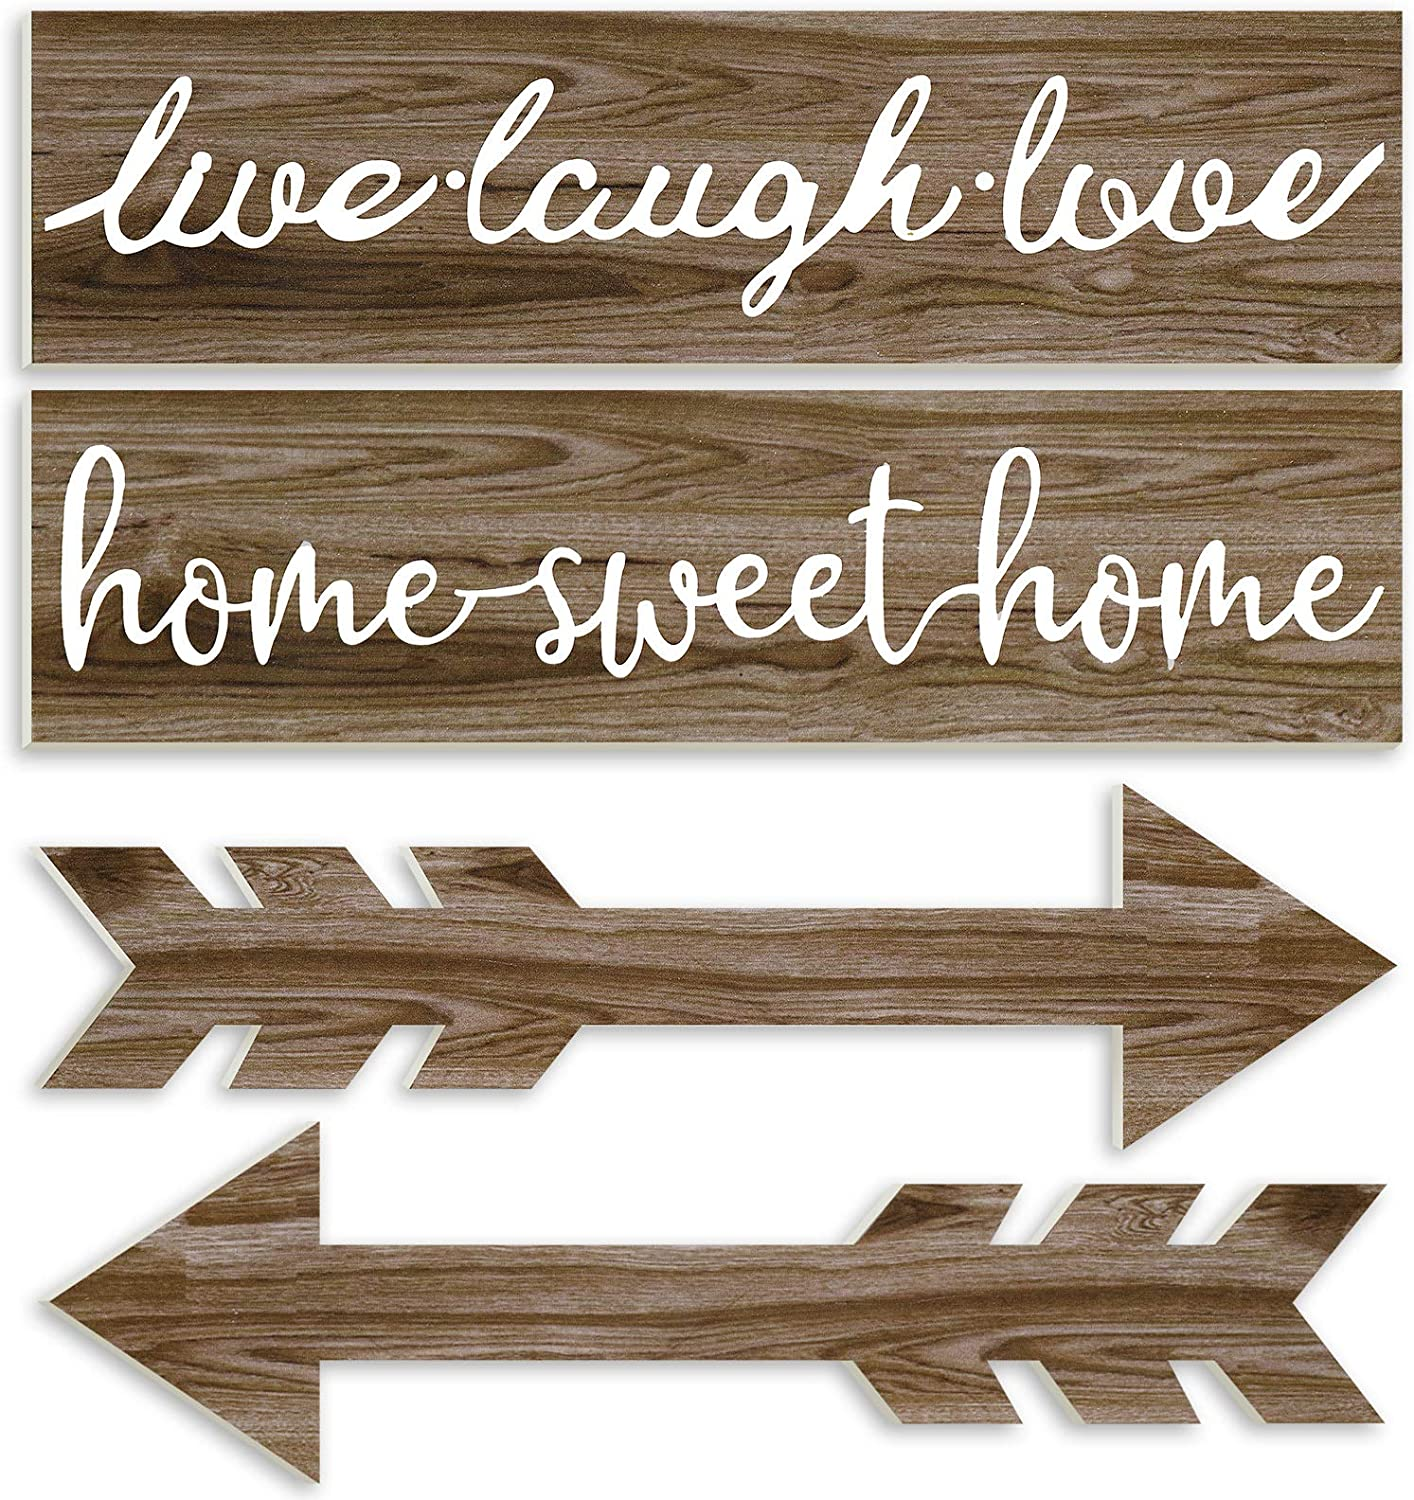 Jetec 4 Pieces Wood Home Sweet Home Signs Rustic Wood Arrow Sign Live Laugh Love Sign Wooden Wall Decors Farmhouse Entryway Signs for Home, 3.7 x 13.8 x 0.2 Inch